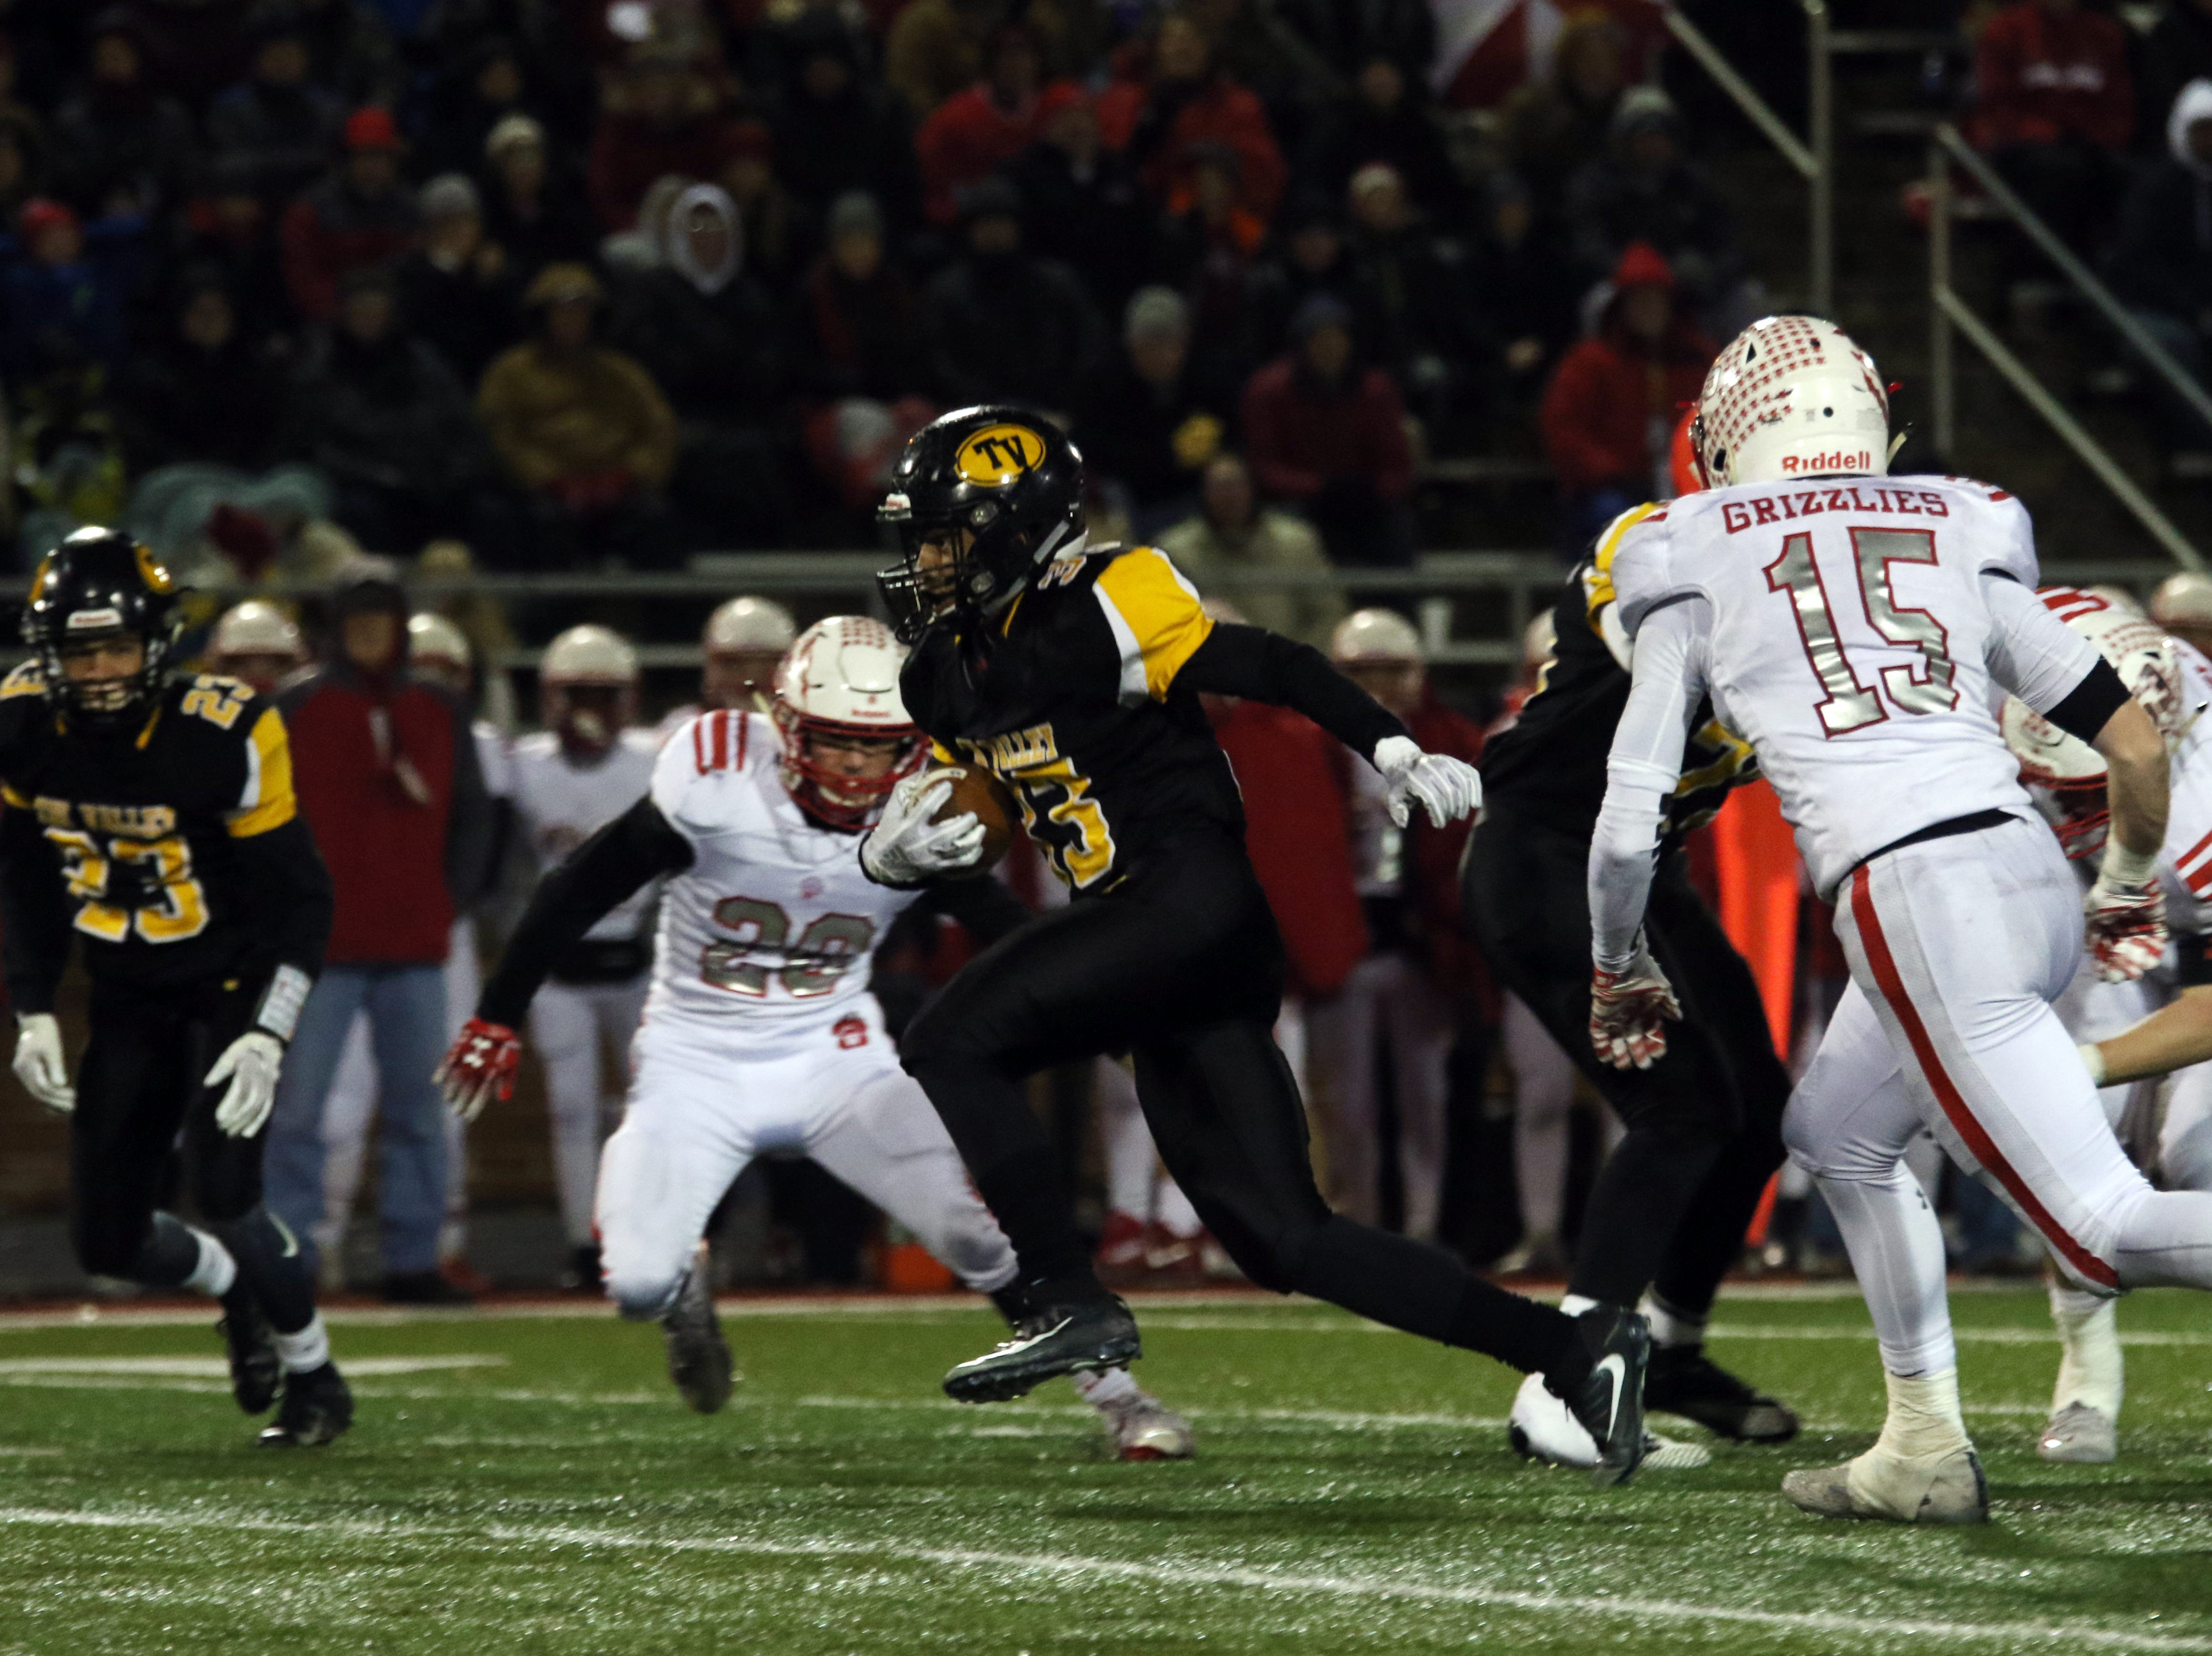 Tri-Valley's Jordan Pantaleo carries the ball against Wadsworth.